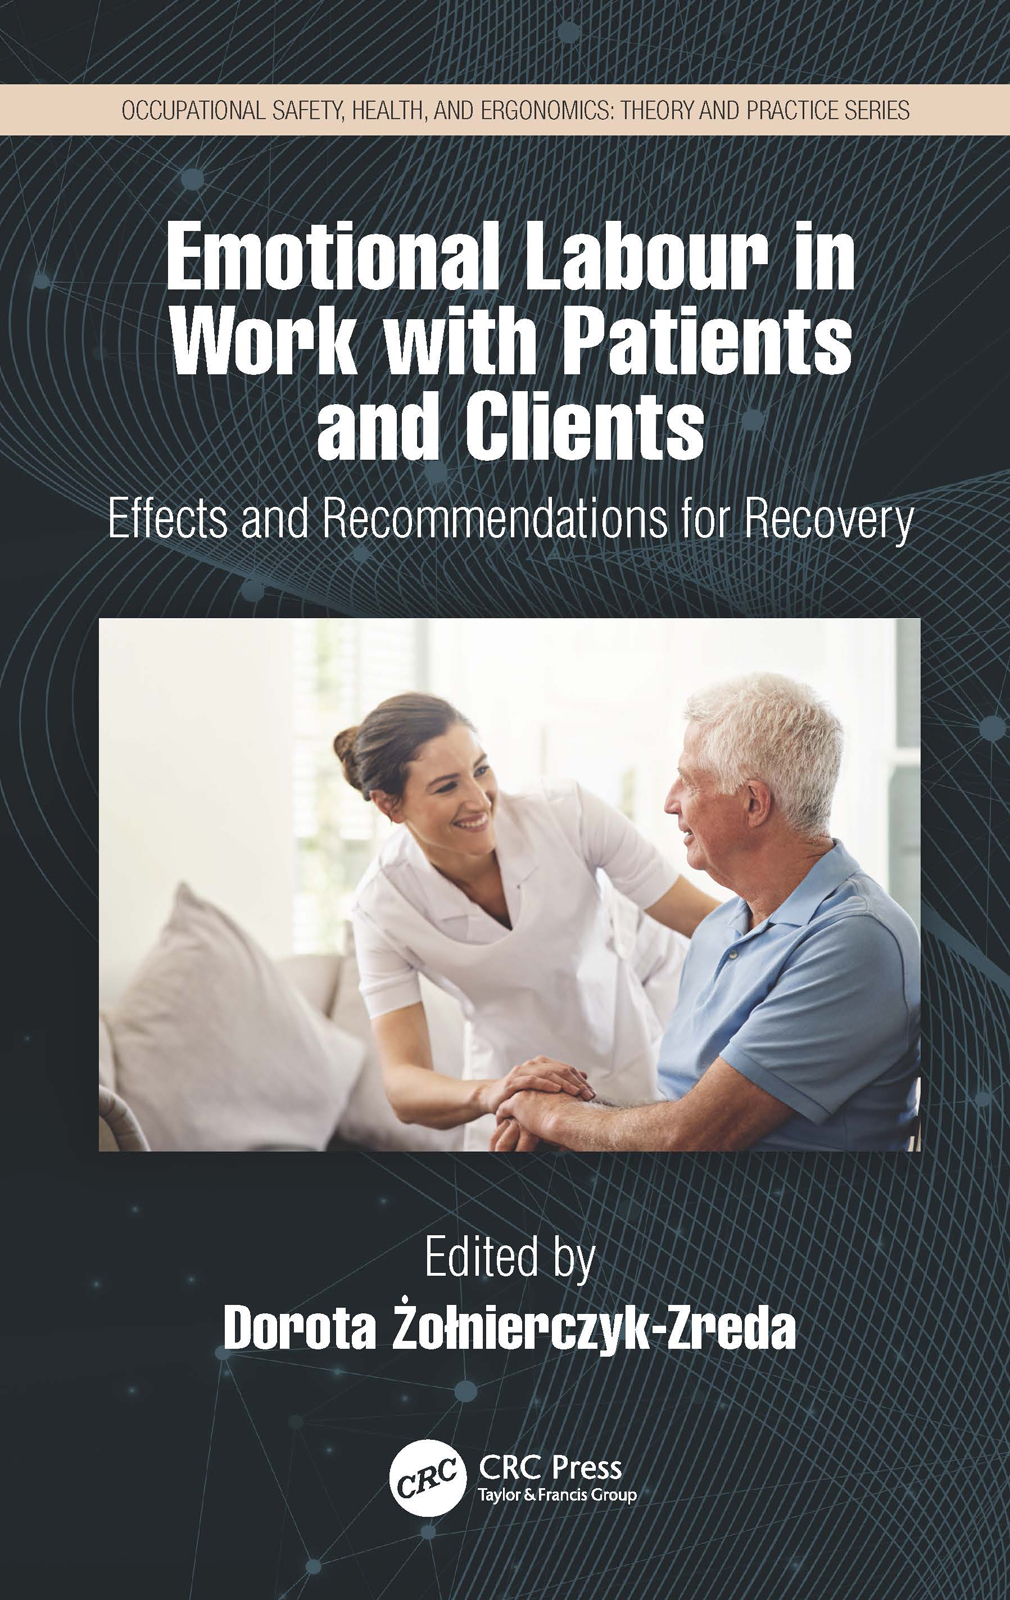 Emotional Labor in Work with Patients and Clients